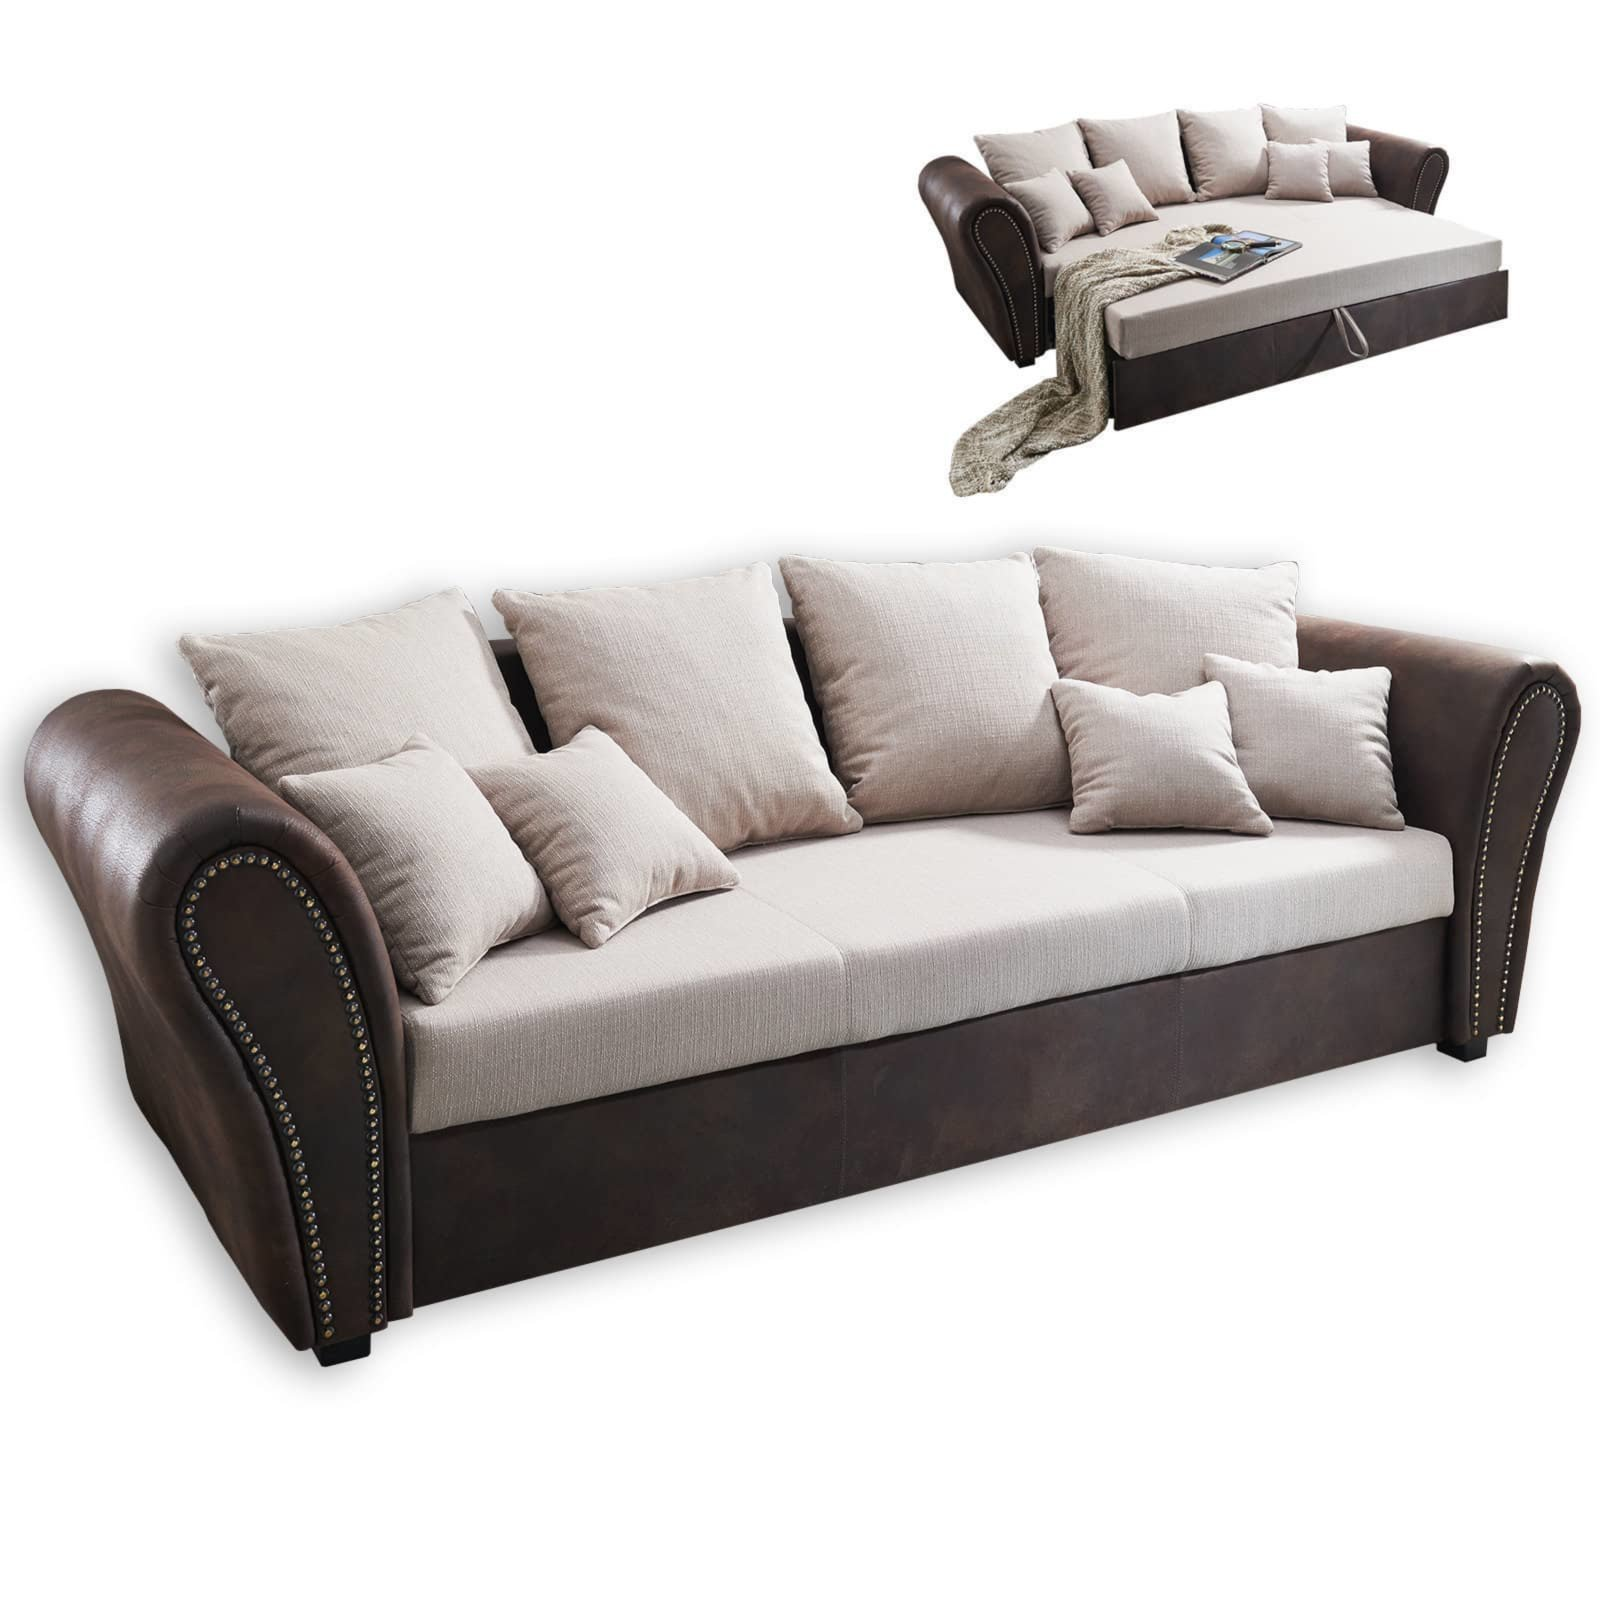 Big Couch Garnitur Big Sofa Braun 25 Best Ideas About Sofa Braun On Pinterest